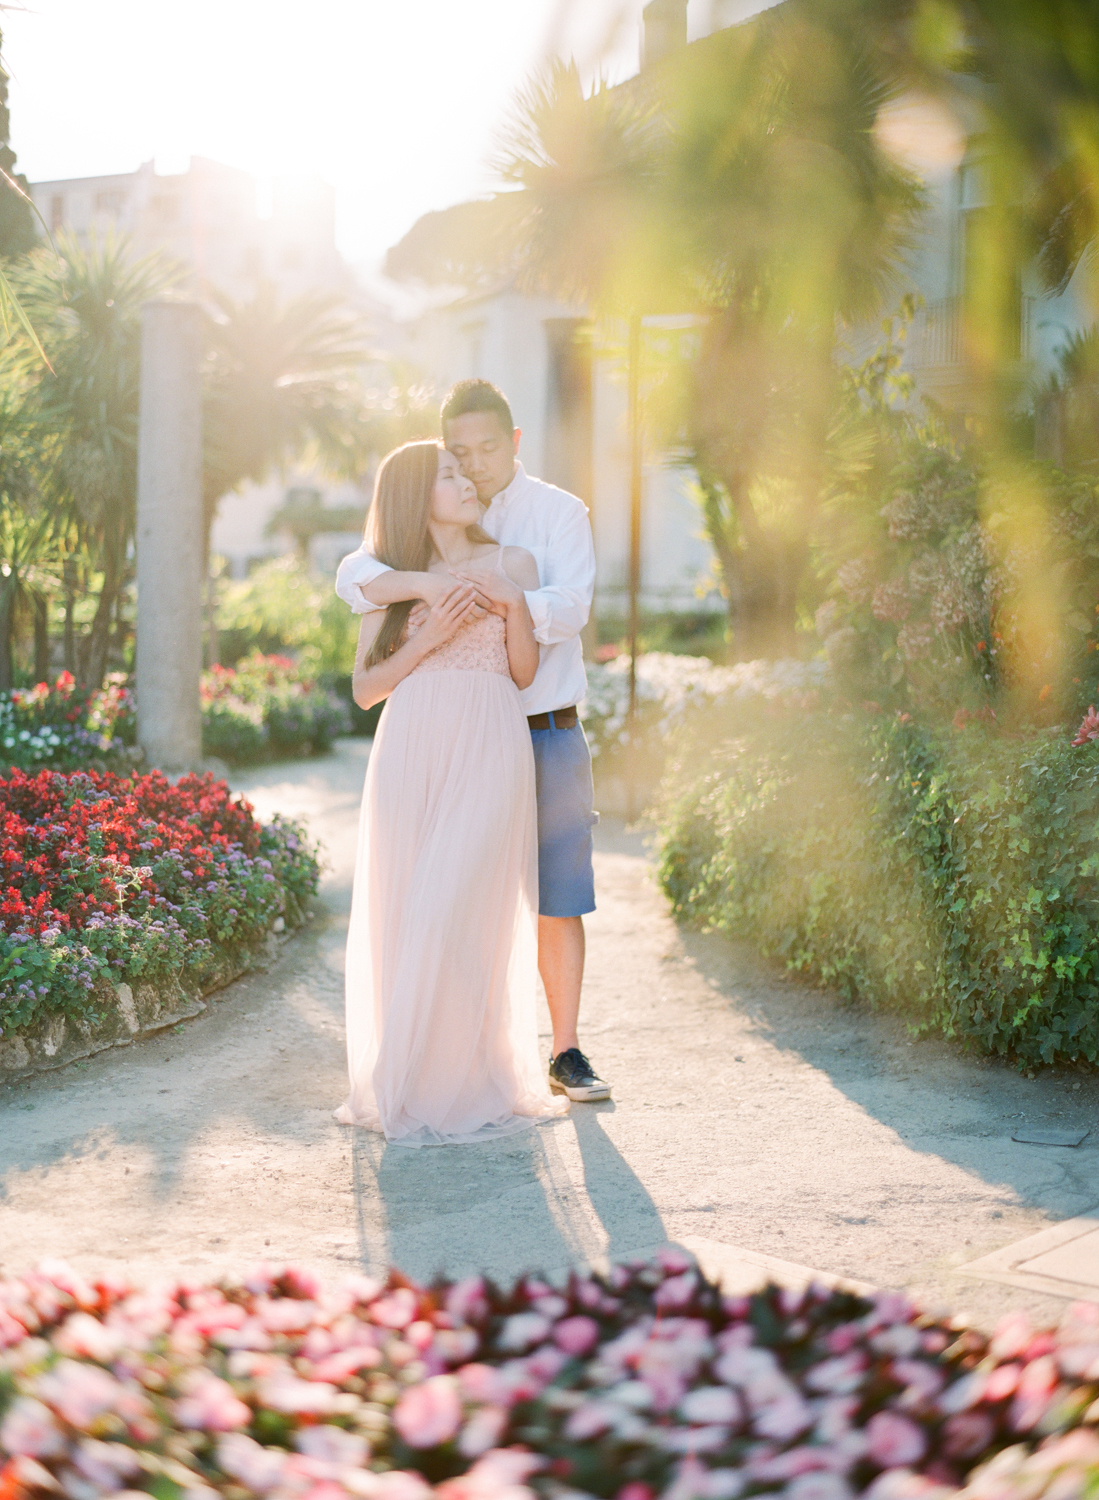 ravello wedding photographer amalfi coast wedding nikol bodnarova film wedding photographer_10.JPG